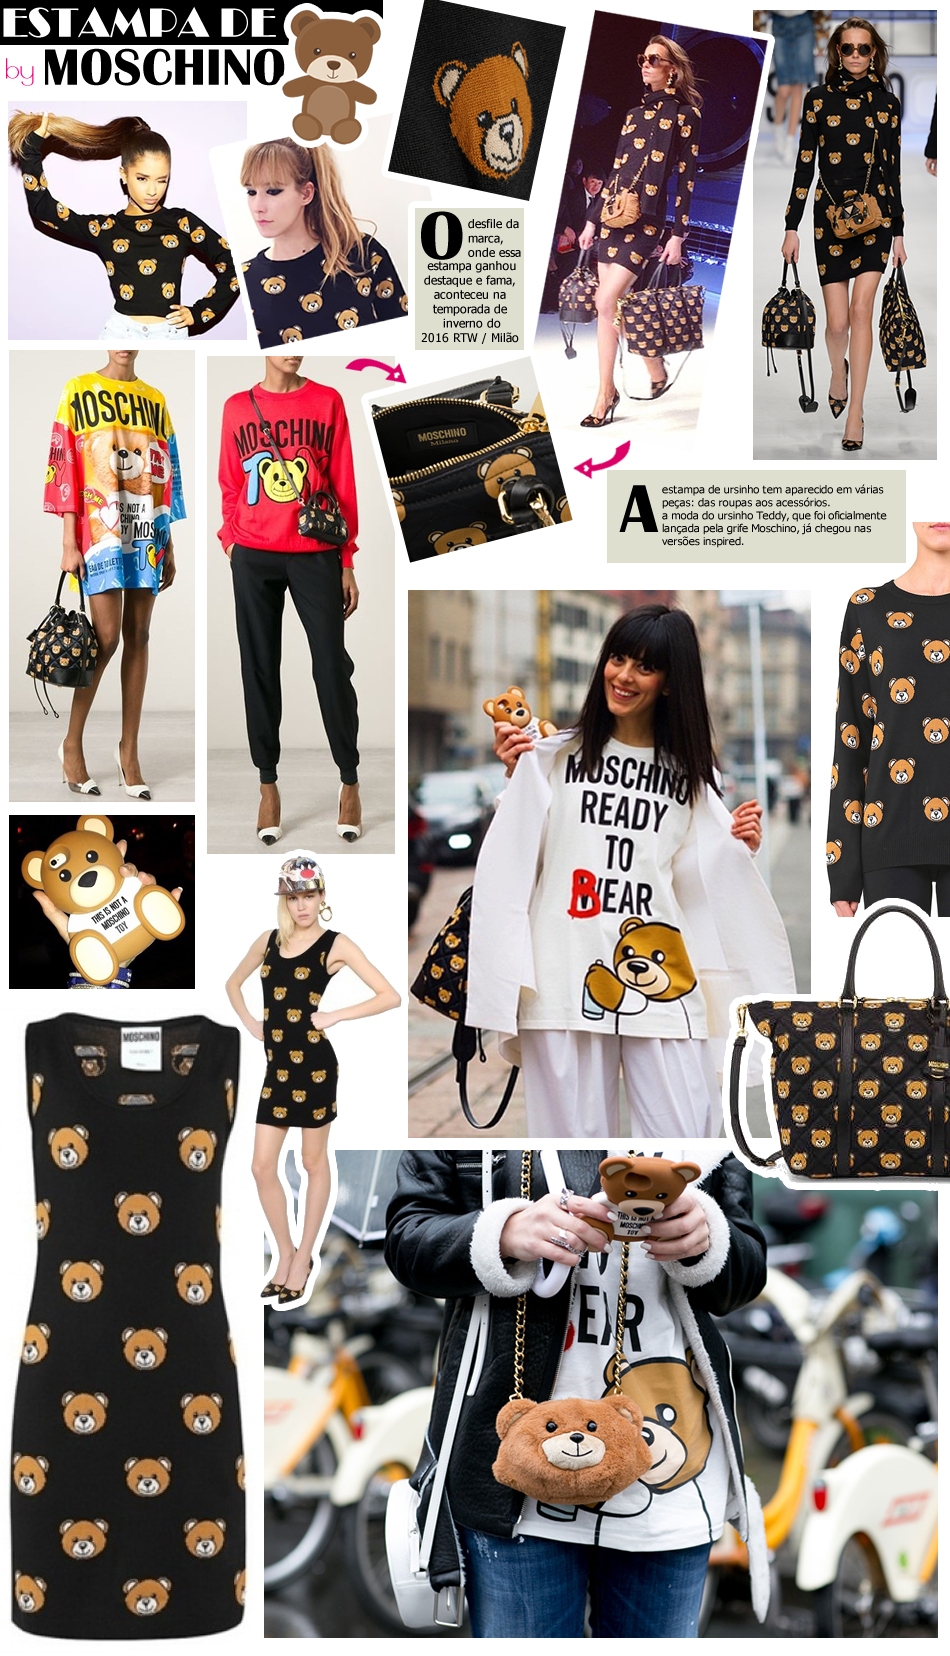 Teddy Bear Fever: A Estampa de Ursinho da Moschino